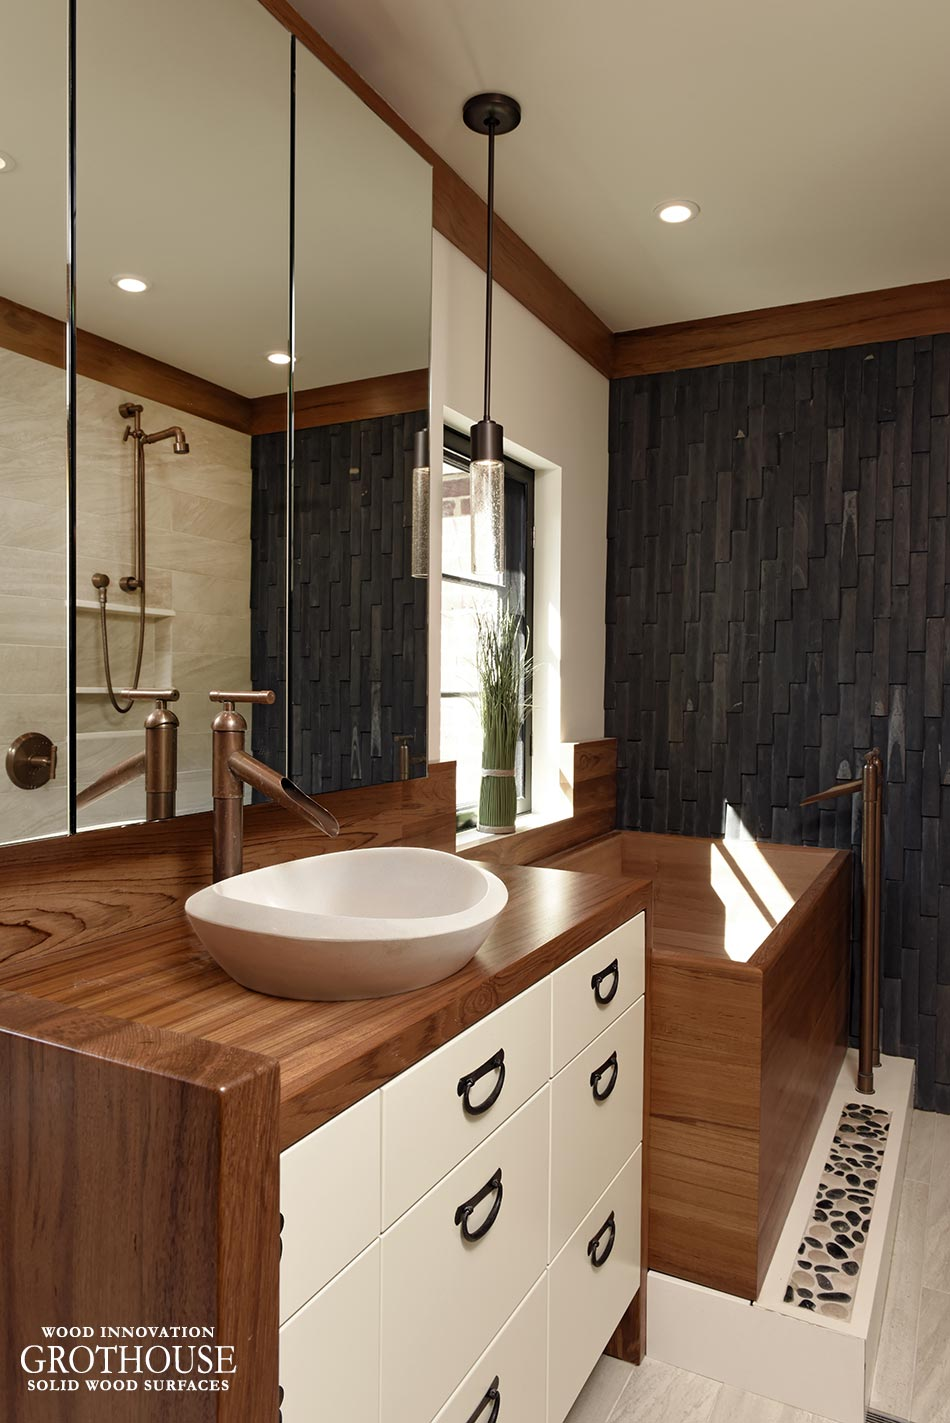 Wood Bath Surround matches vanity countertop and divider wall in Asian style master bath